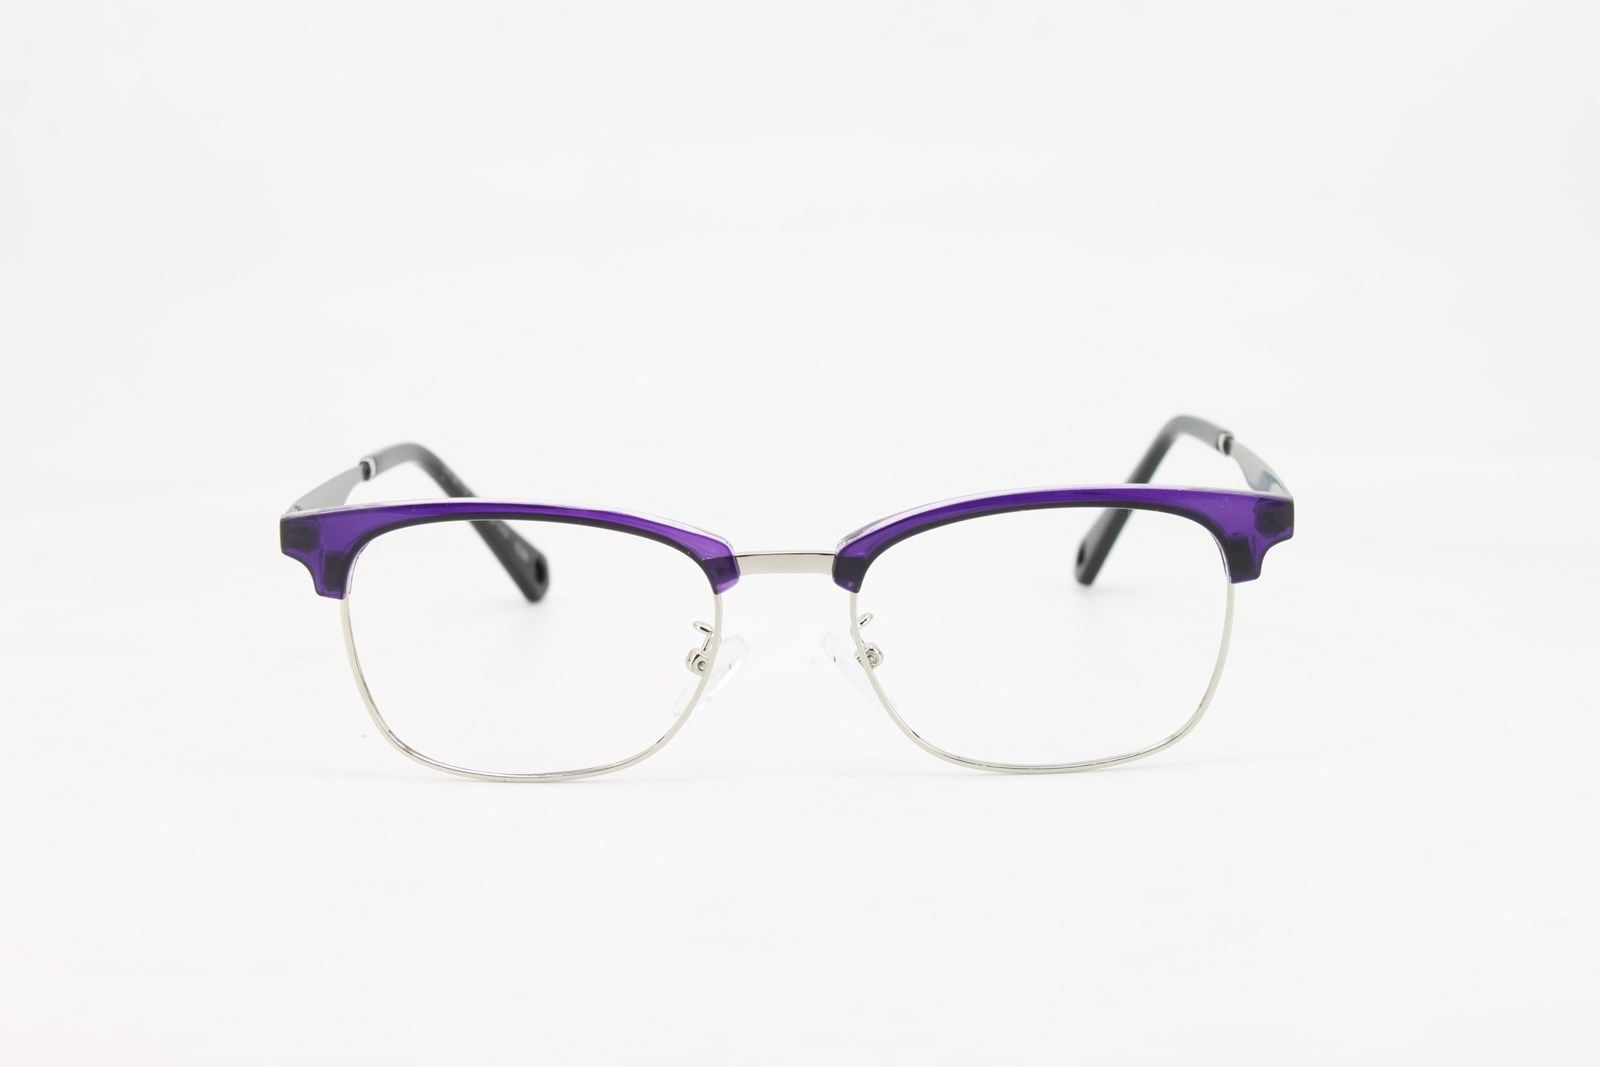 4aa35cde6d99 ... Ebe Bifocal Reading Glasses Mens Womens Violet Horn Rimmed Trendy  Quality